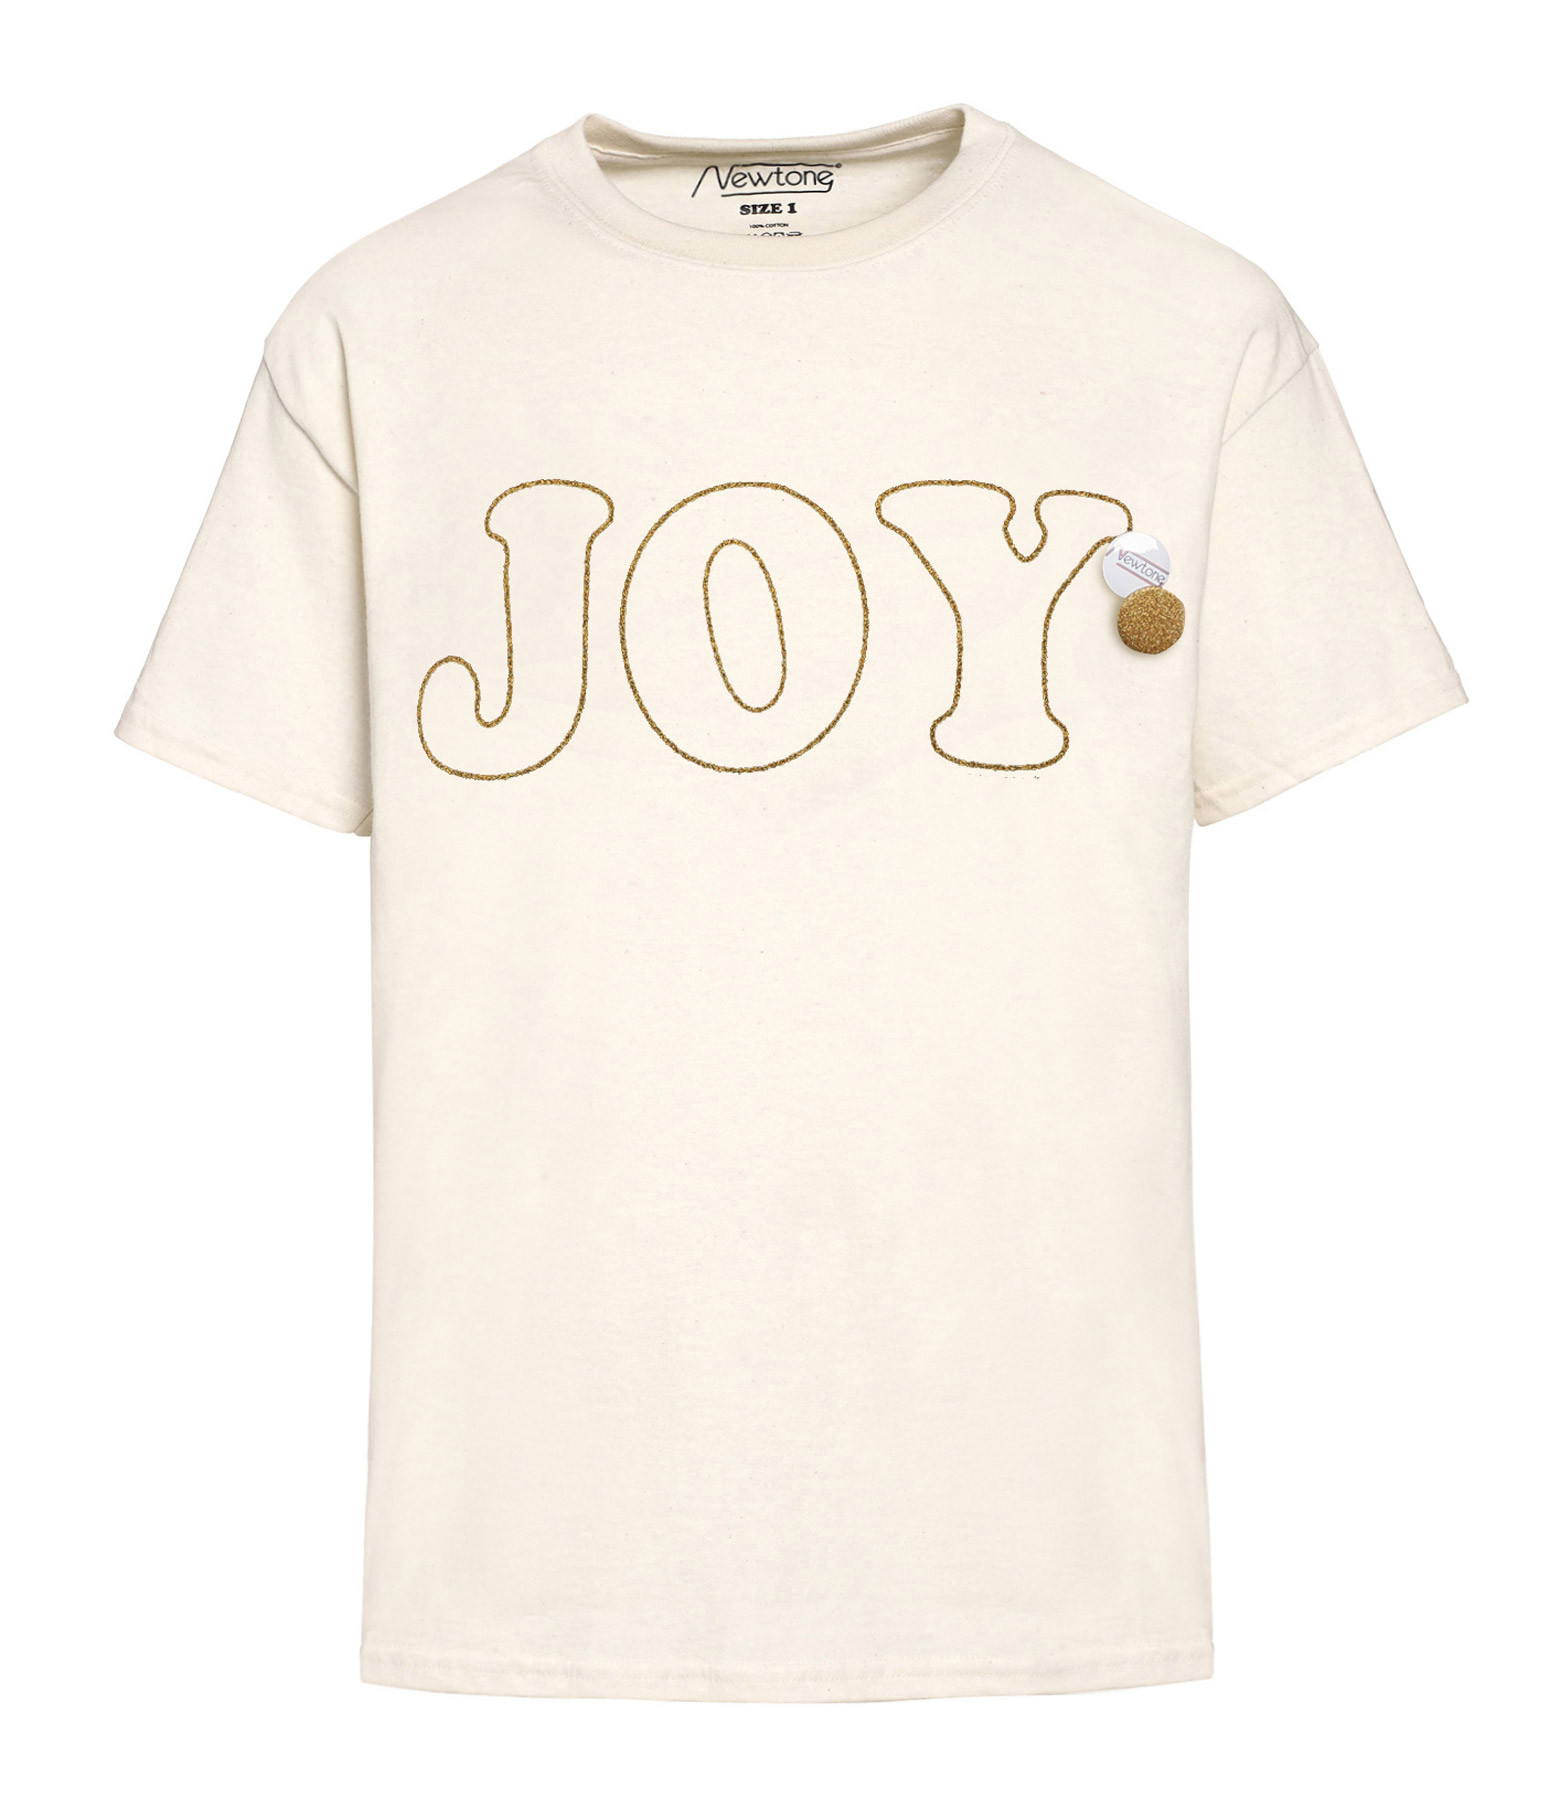 NEWTONE - Tee-shirt Joy Coton Naturel Glitter